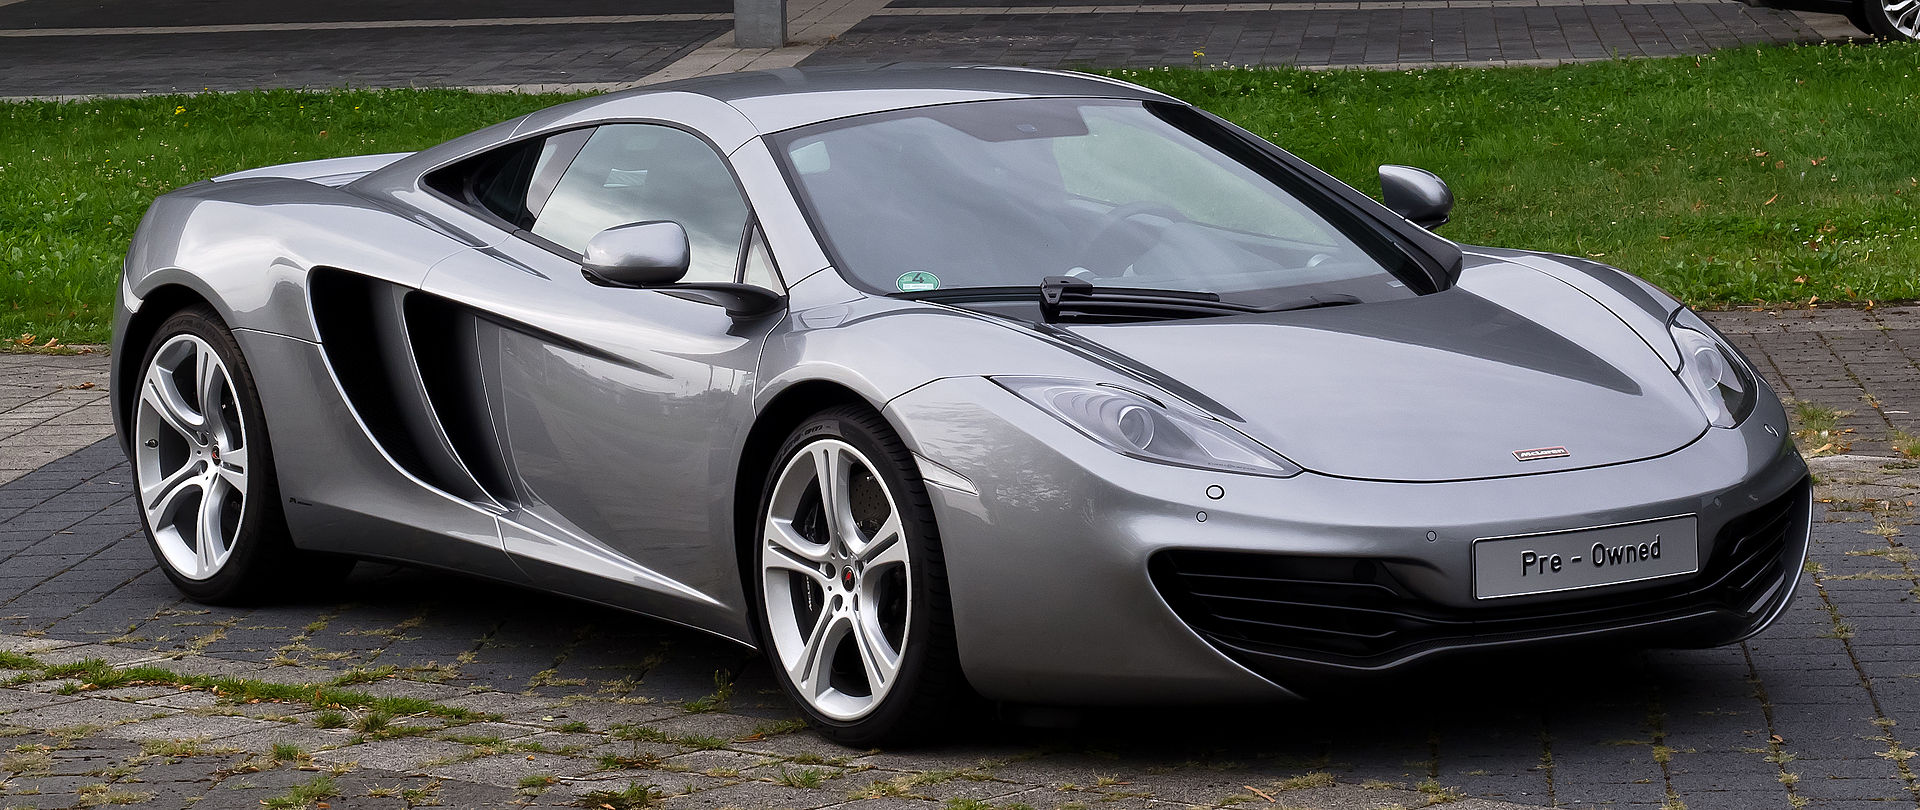 mclaren 12c wikipedia. Black Bedroom Furniture Sets. Home Design Ideas